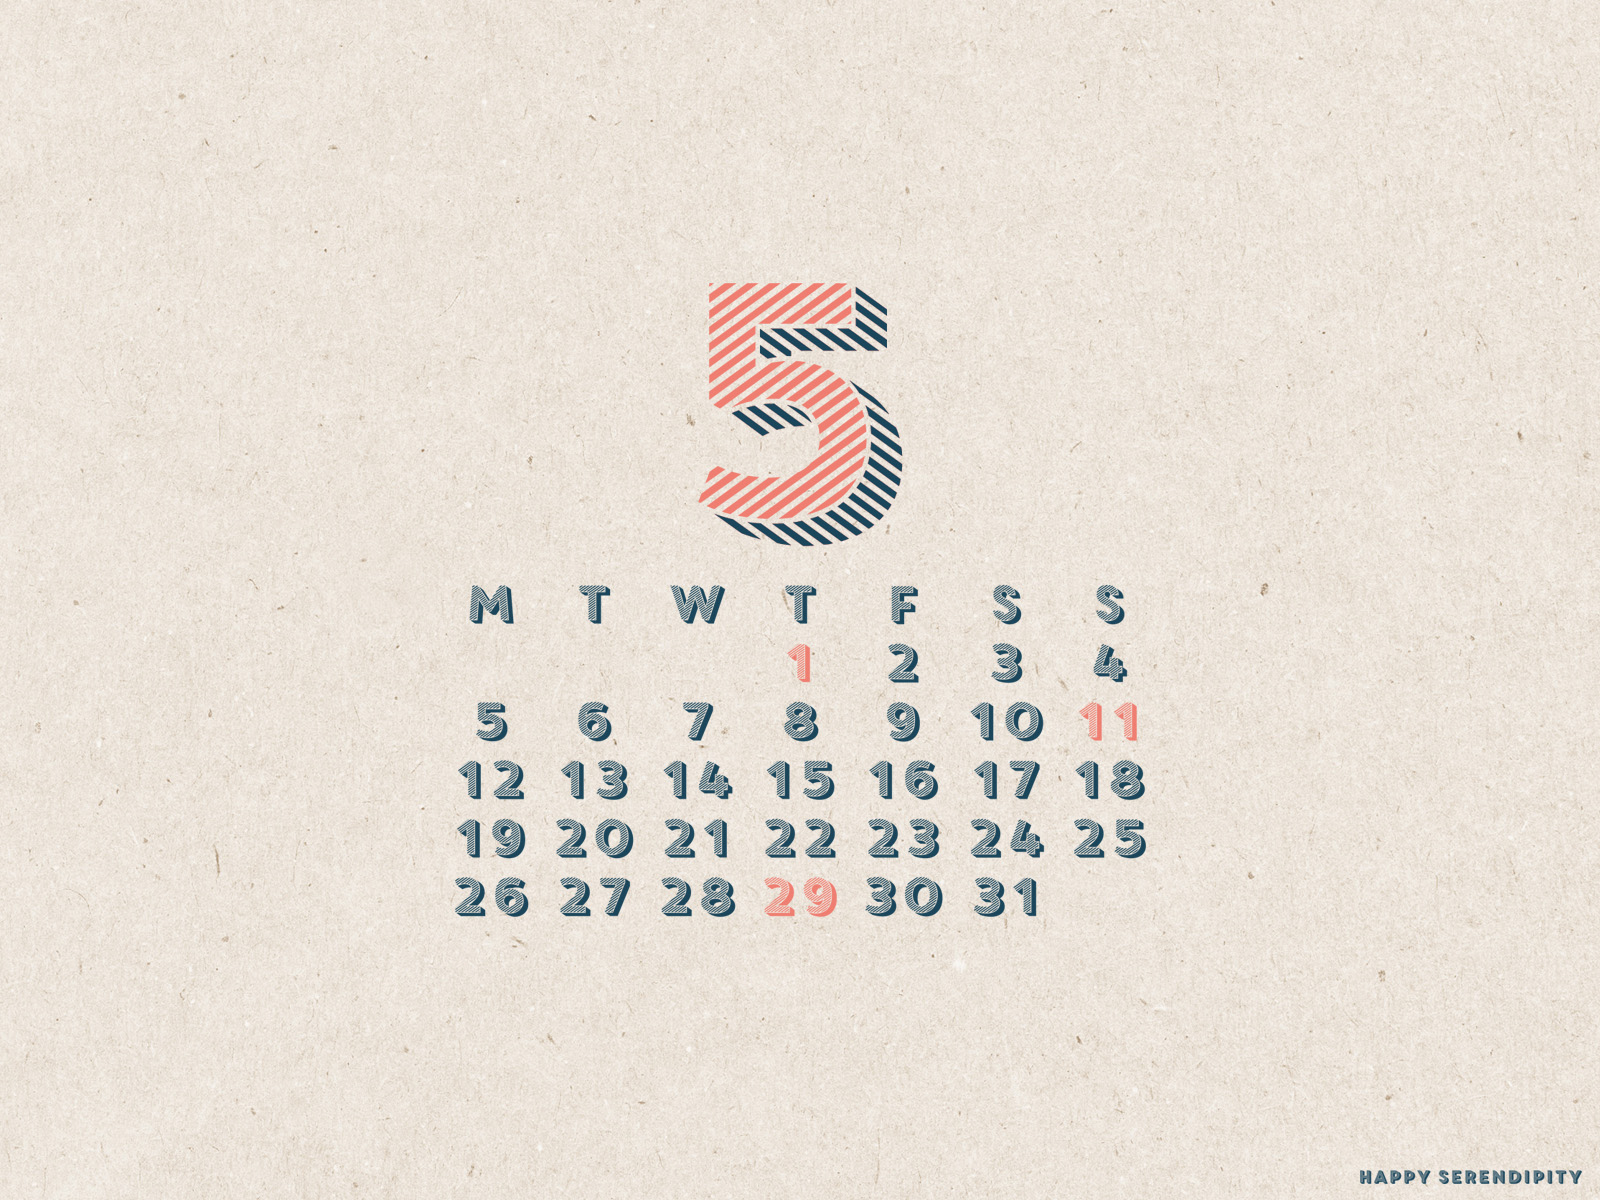 desktopwallpaper-dekstopkalender-kalendermai2014-desktopbackground-desktopcalendarmay2014-happyserendipity